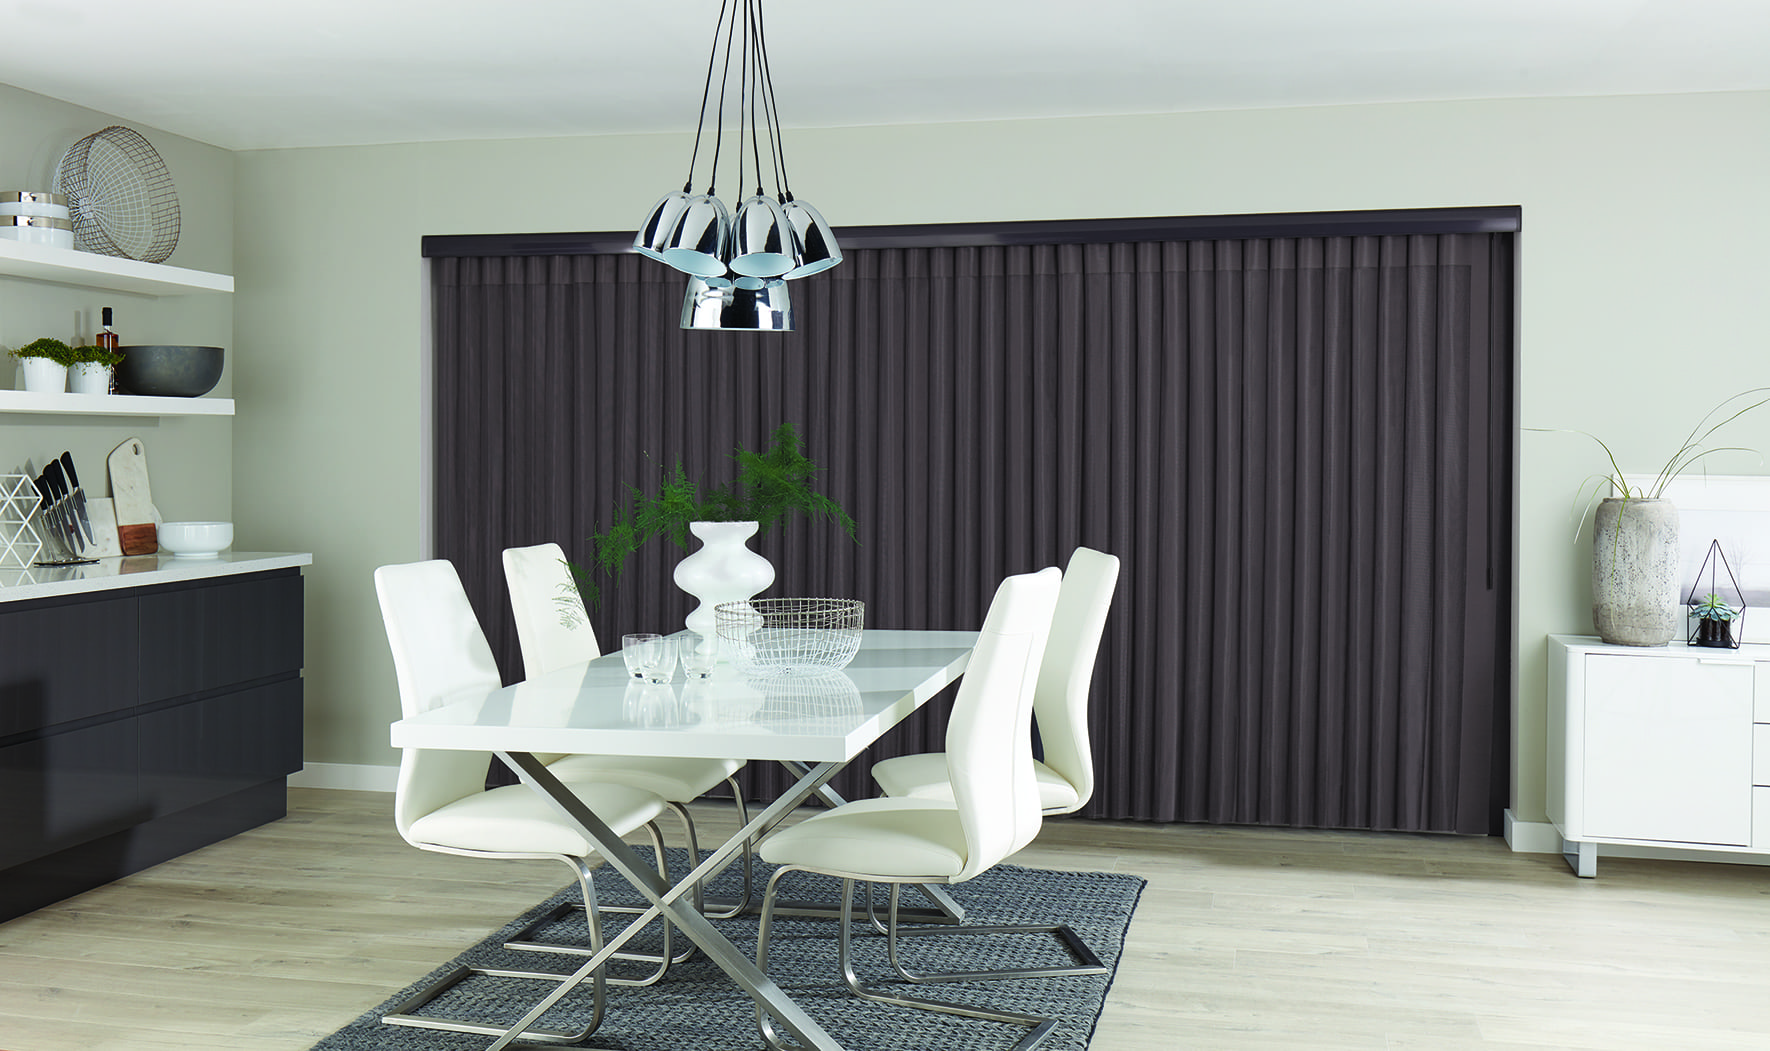 Closed free hanging allusion curtains.